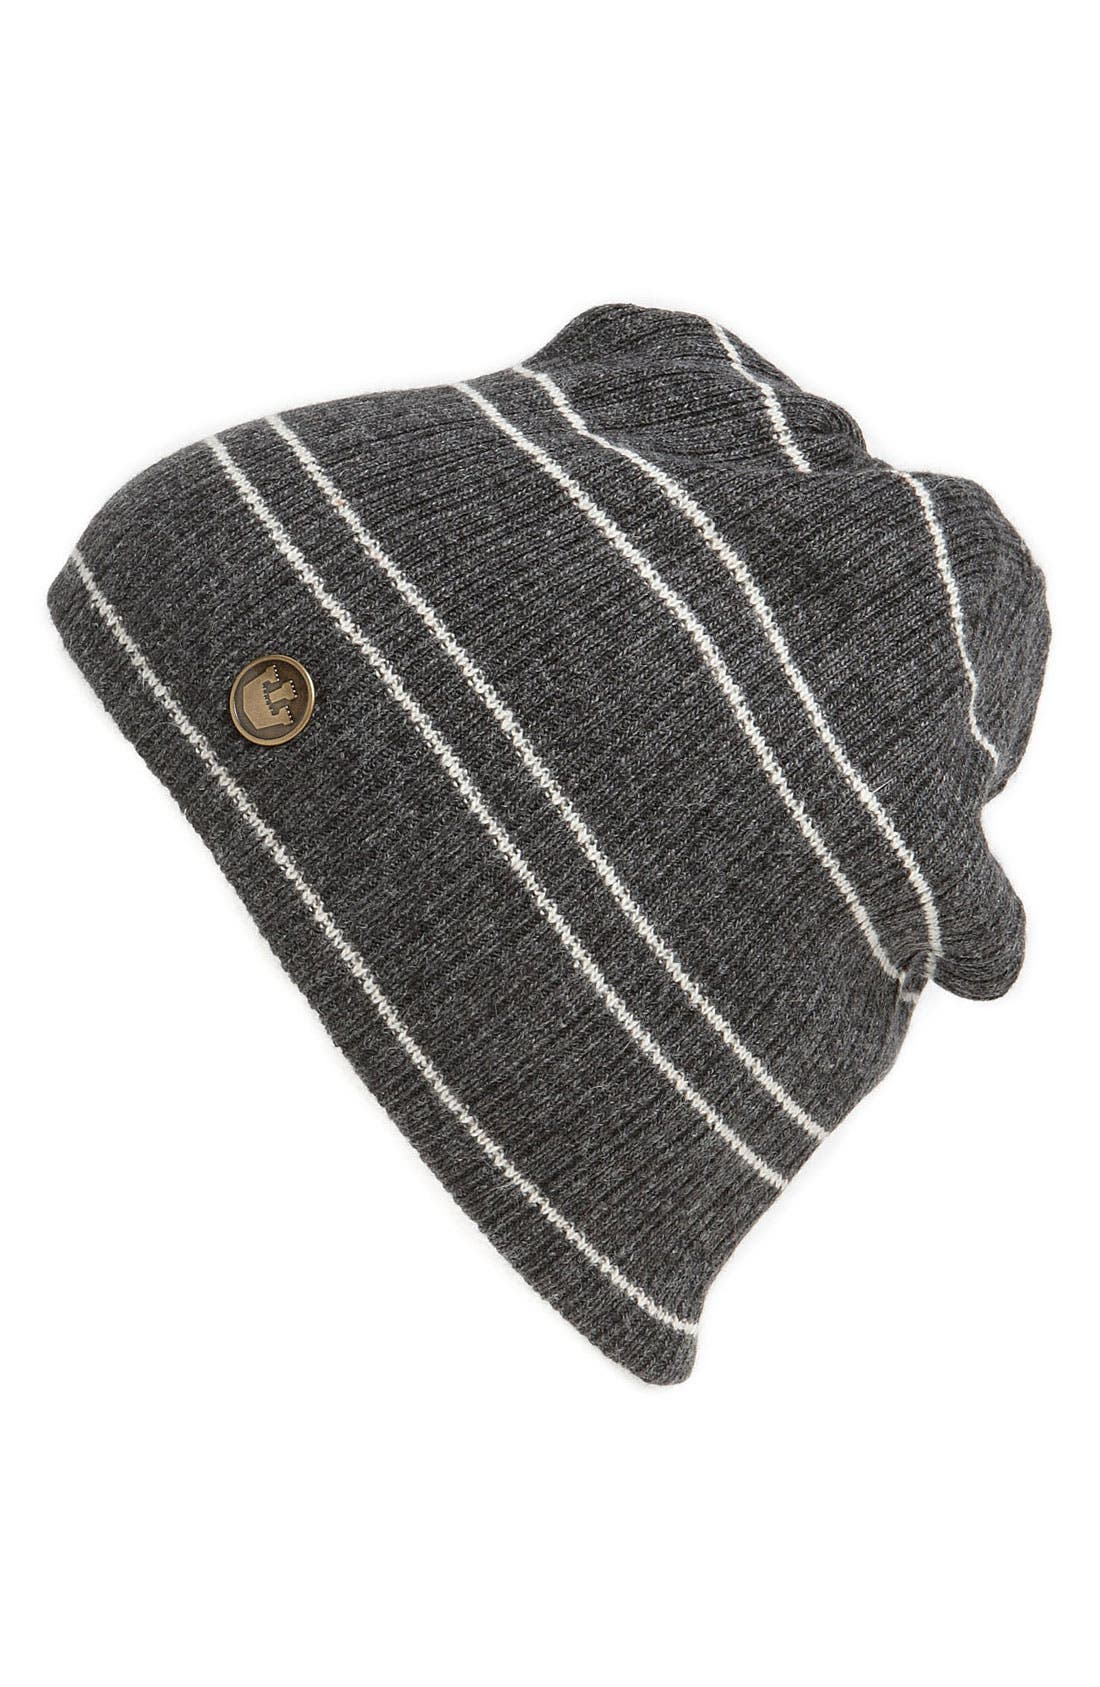 Alternate Image 1 Selected - Goorin Brothers 'Tiger' Stripe Knit Cap